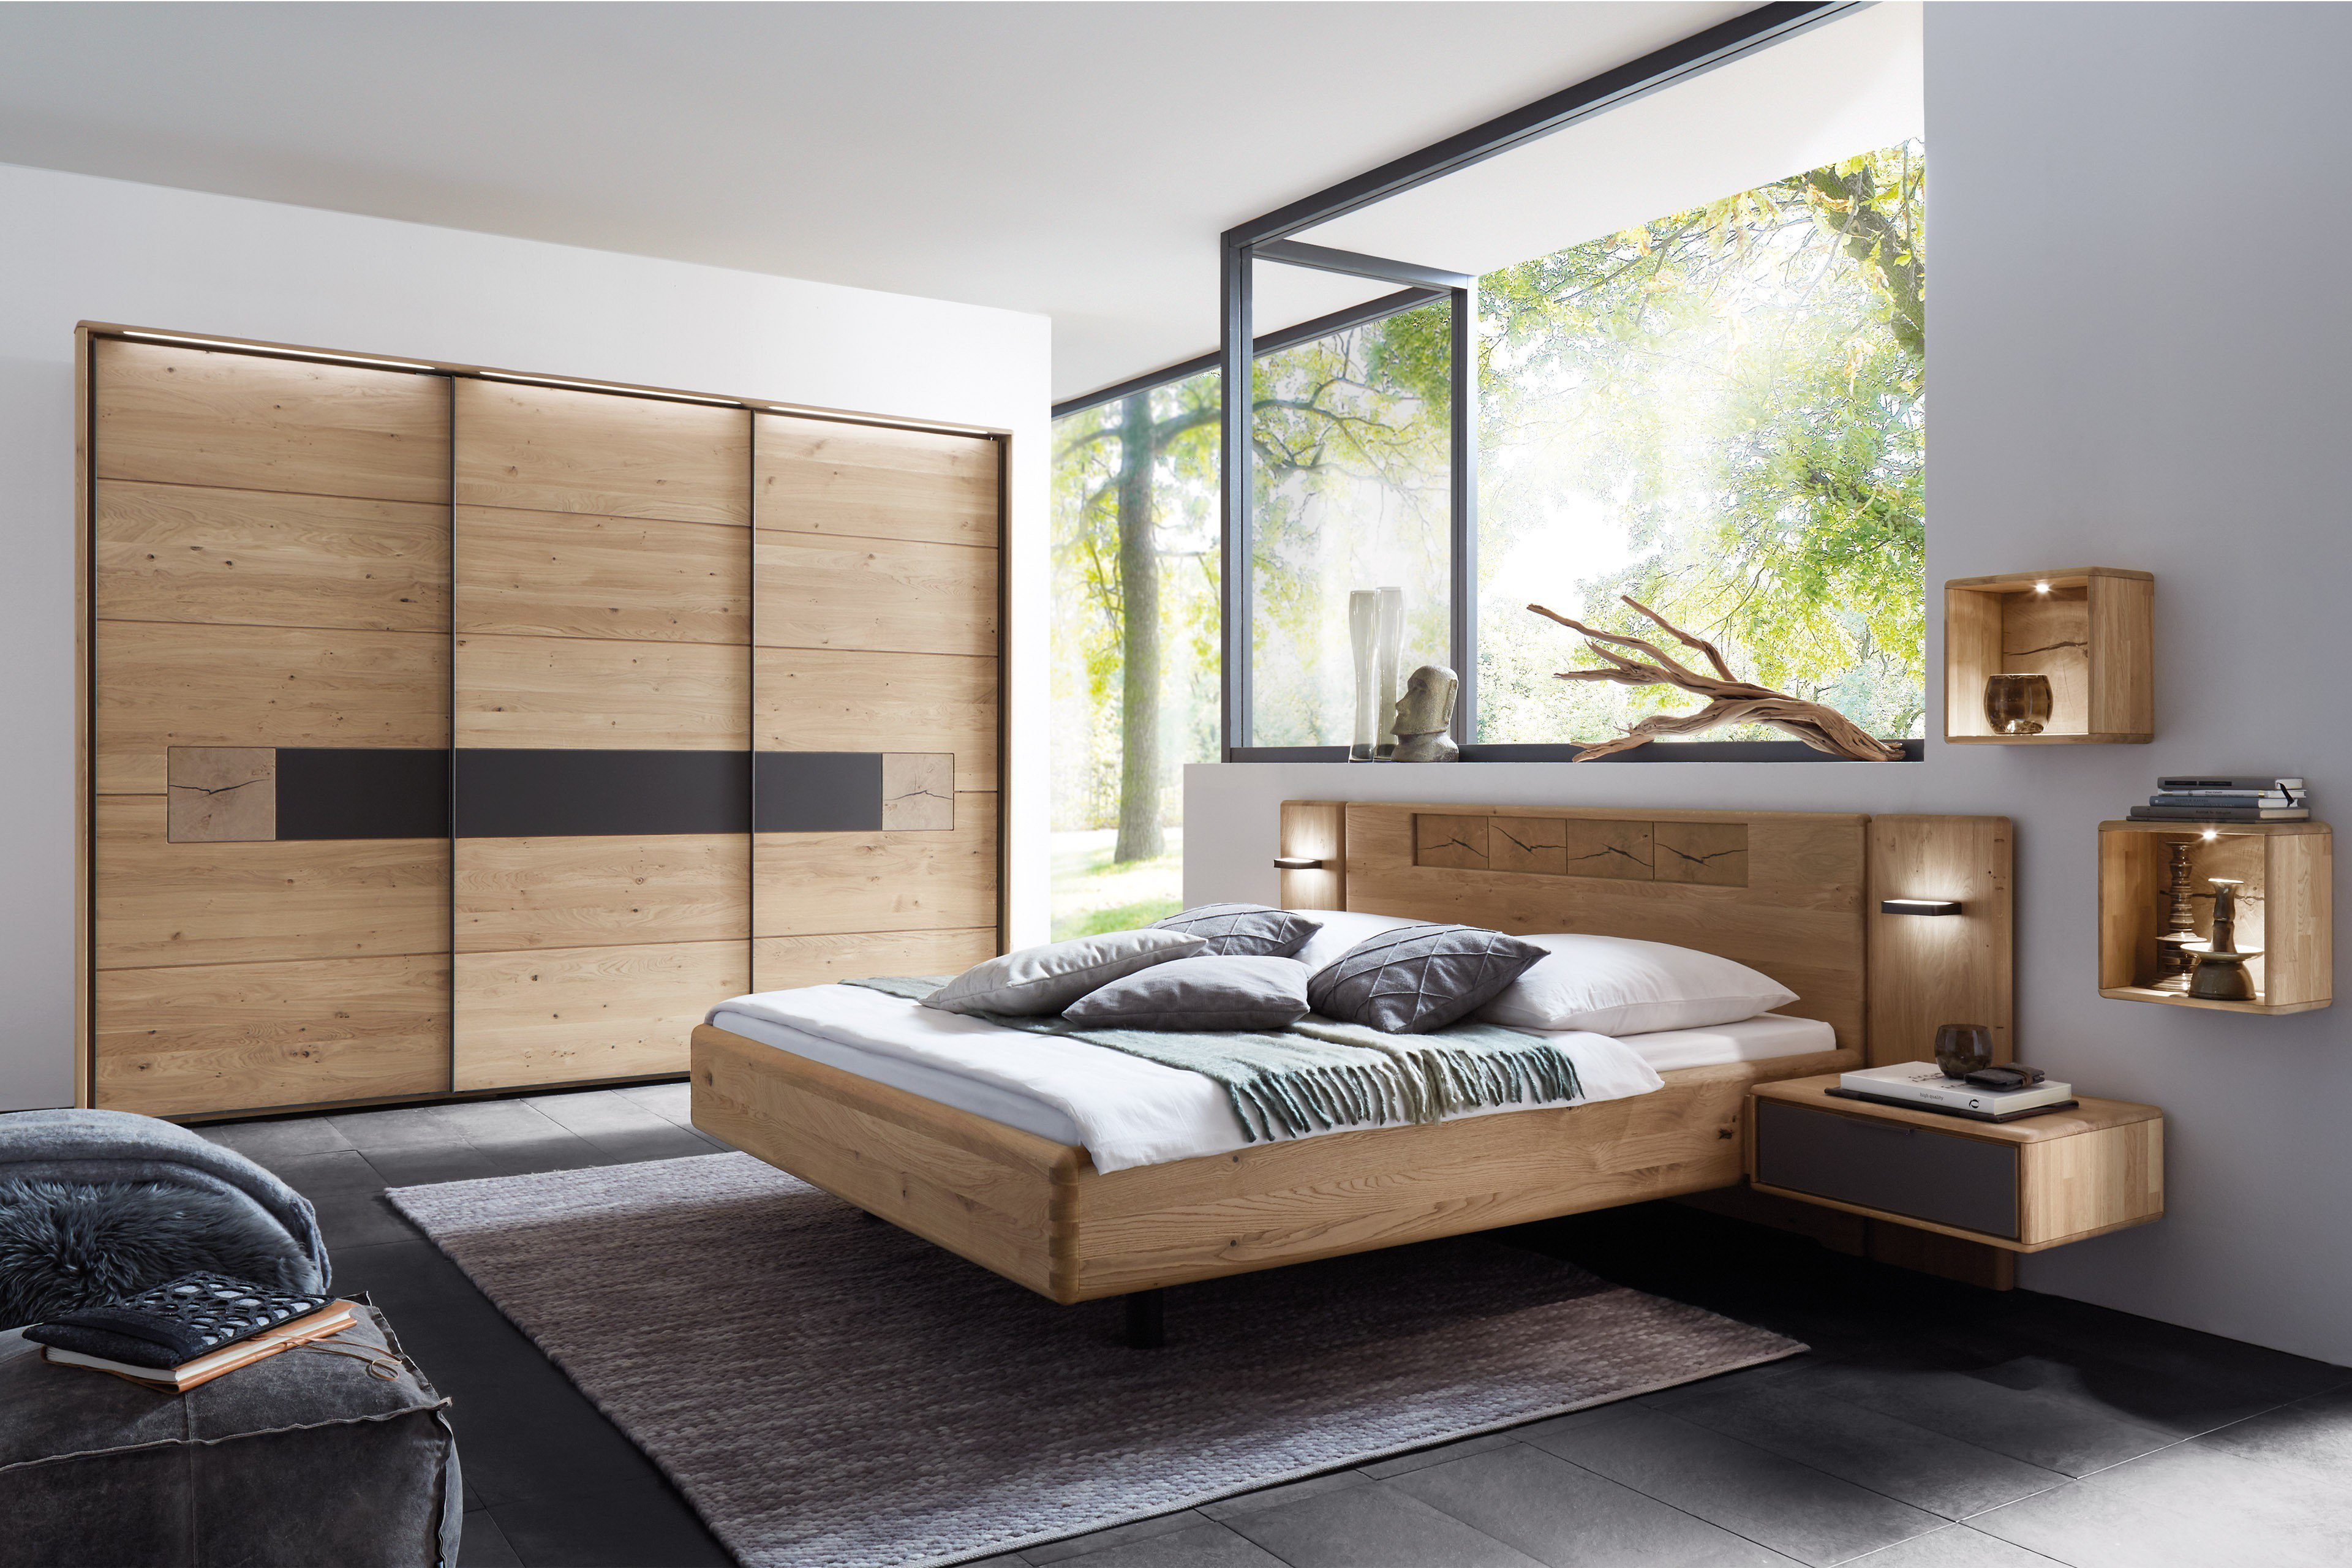 wsm 1600 w stmann schlafzimmer m bel wildeiche m bel. Black Bedroom Furniture Sets. Home Design Ideas